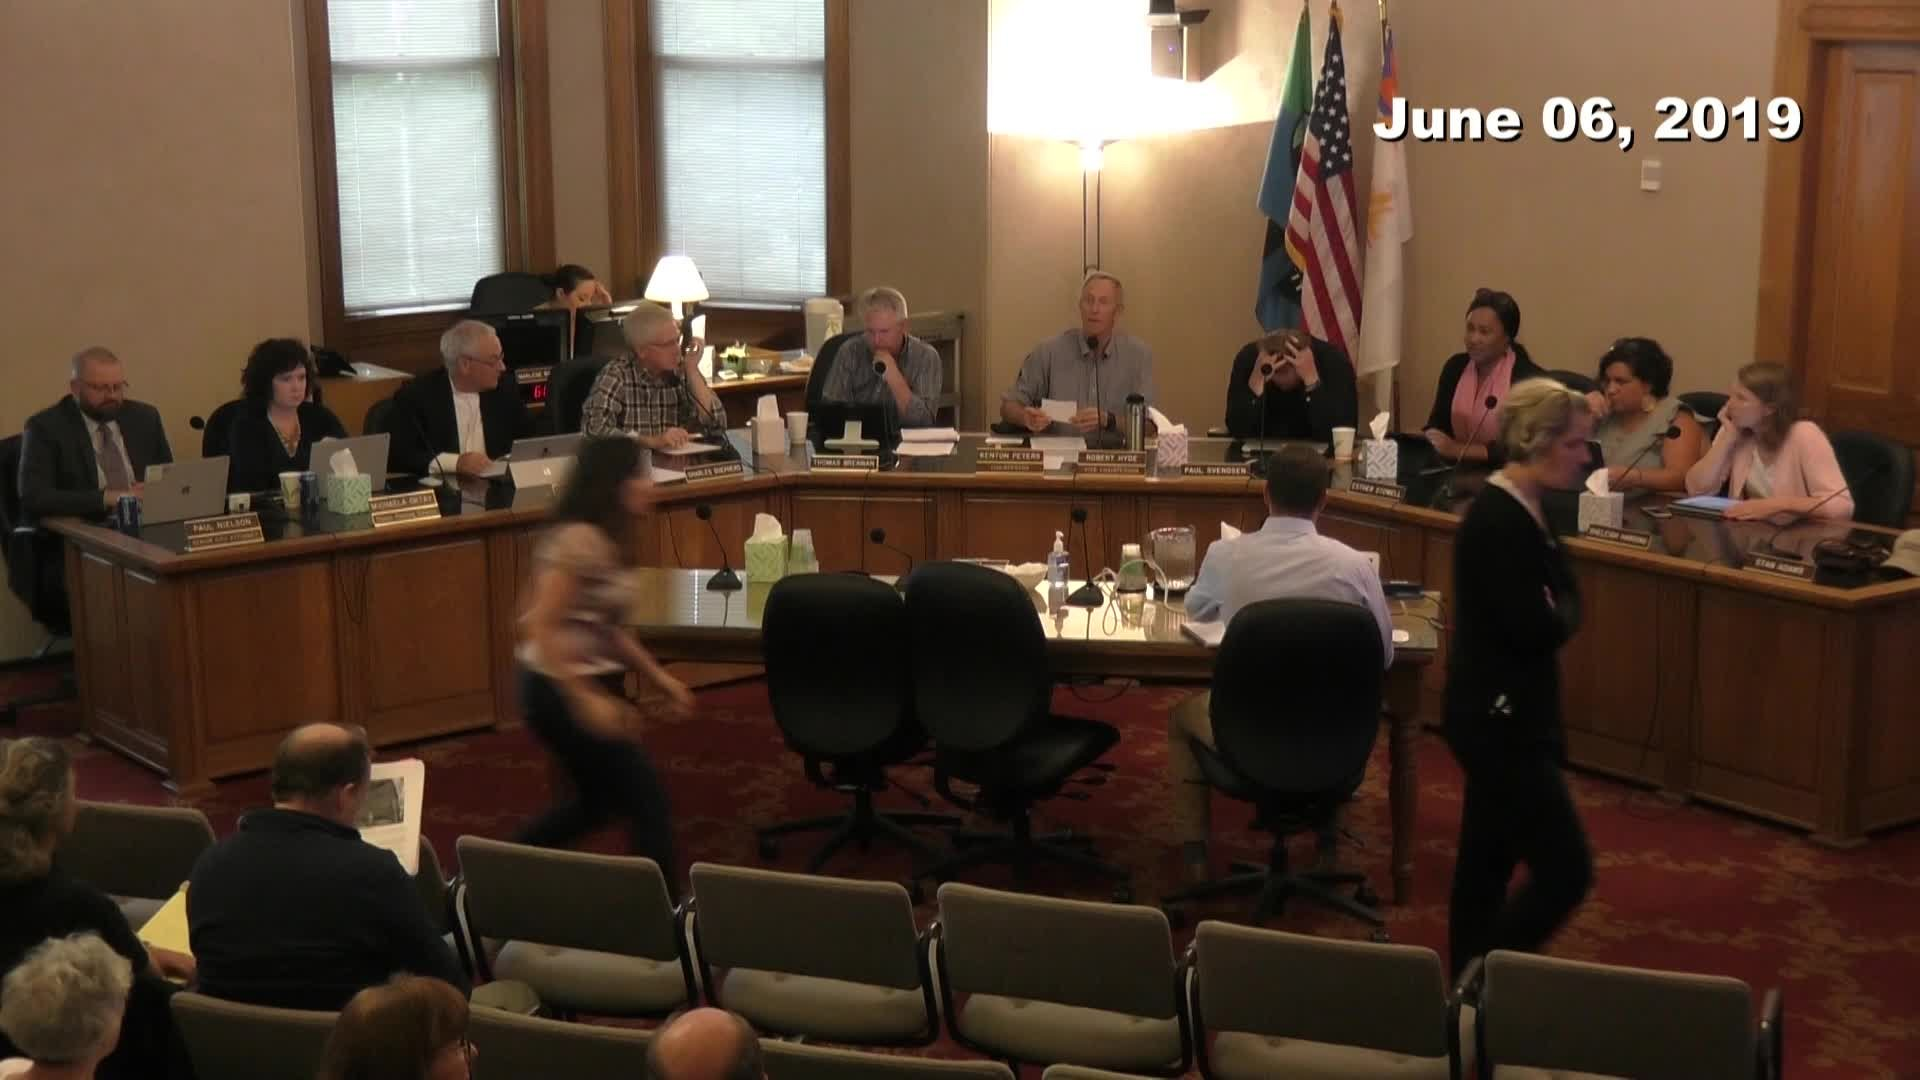 Historic Landmarks Commission Meeting - 06/06/2019